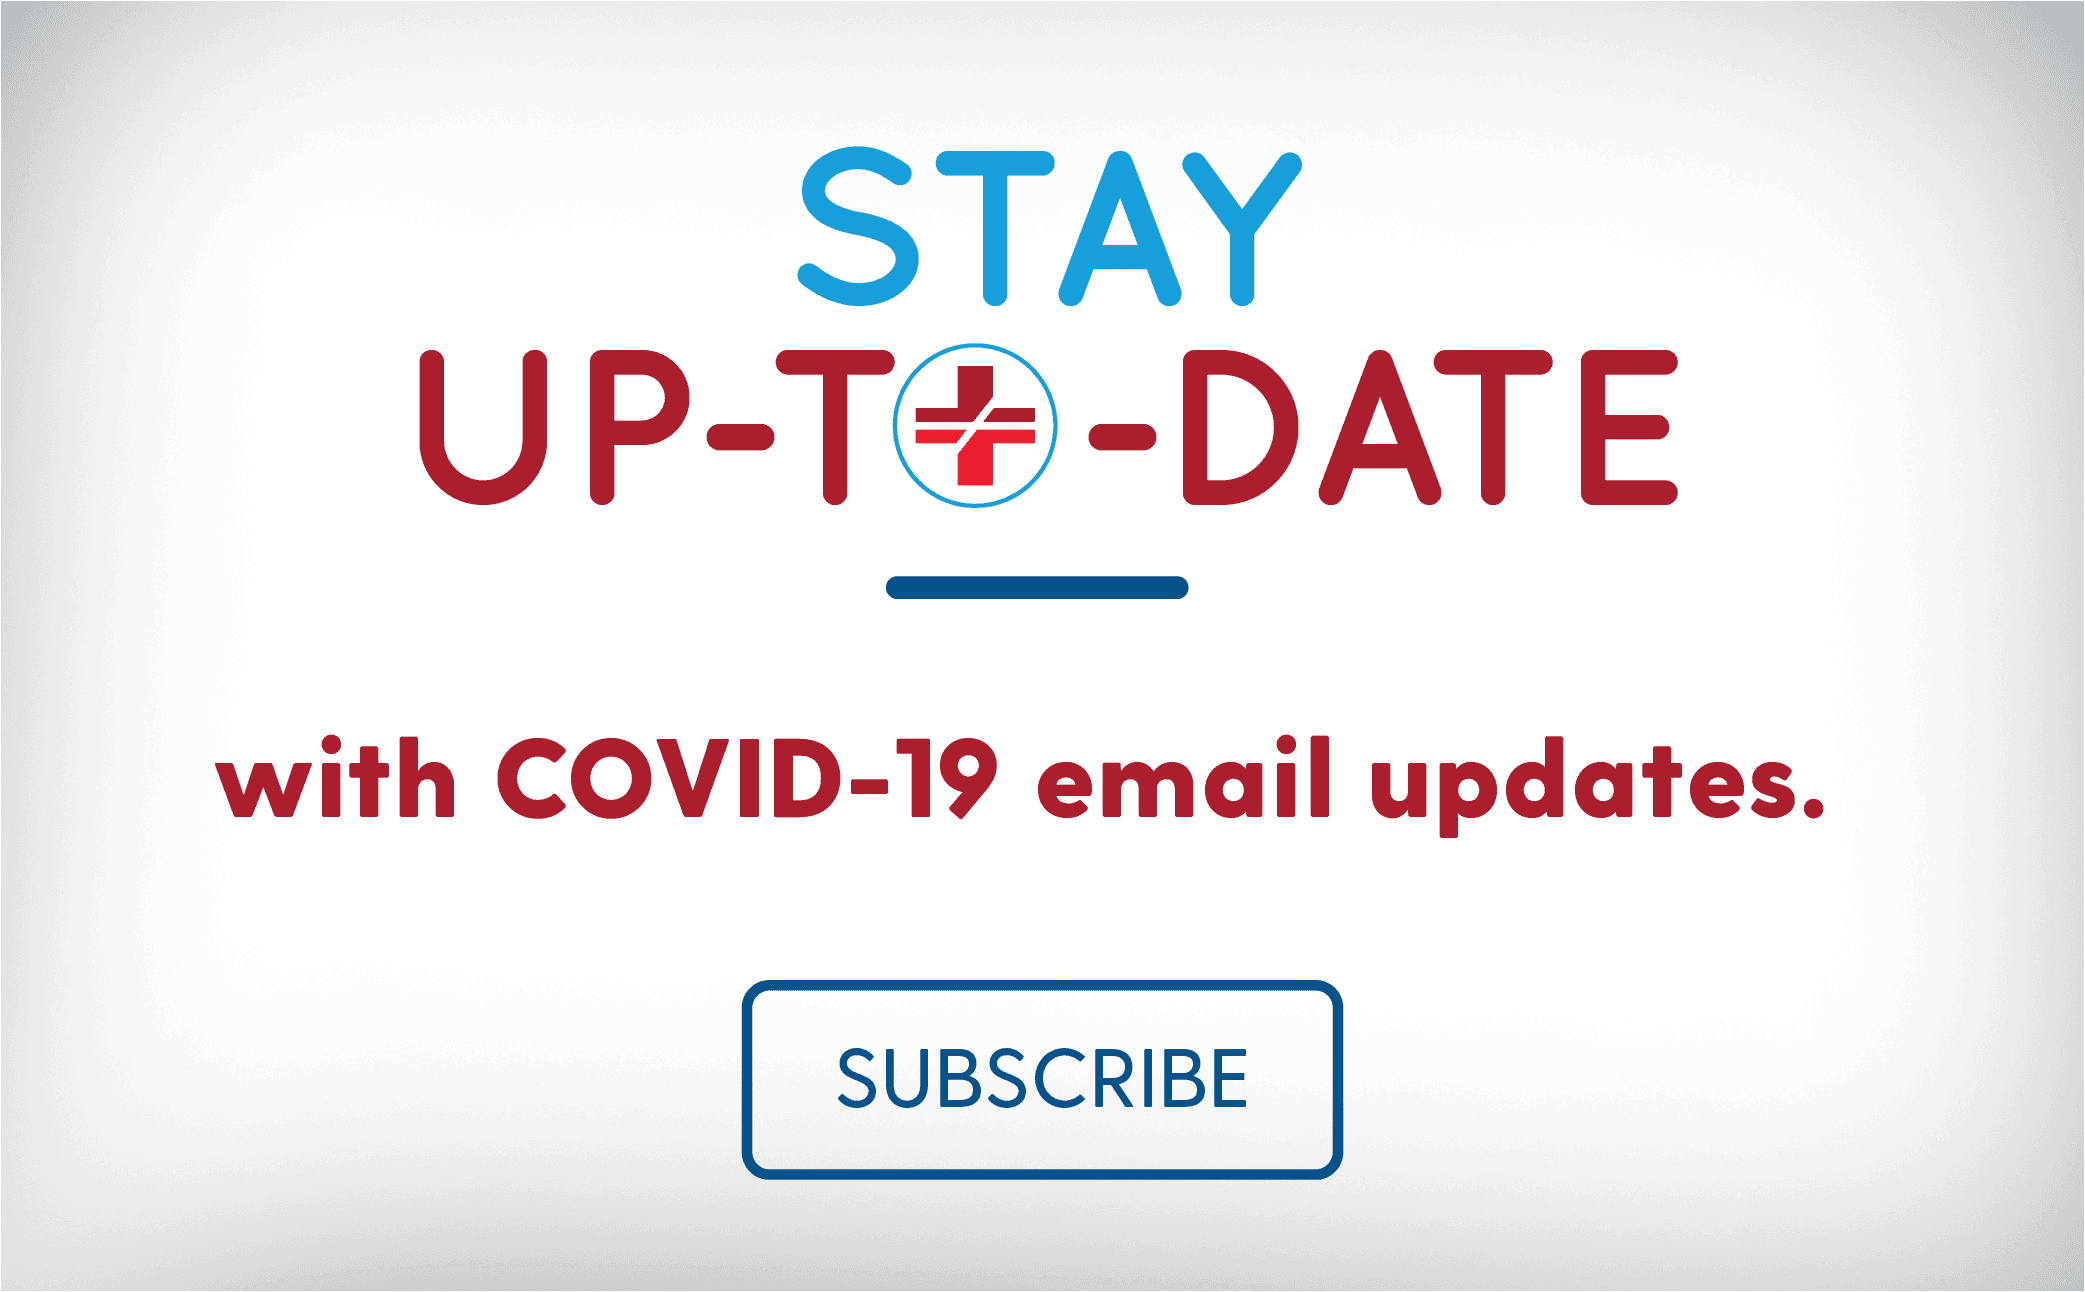 STAY UP TO DATE WITH COVID EMAIL UPDATES